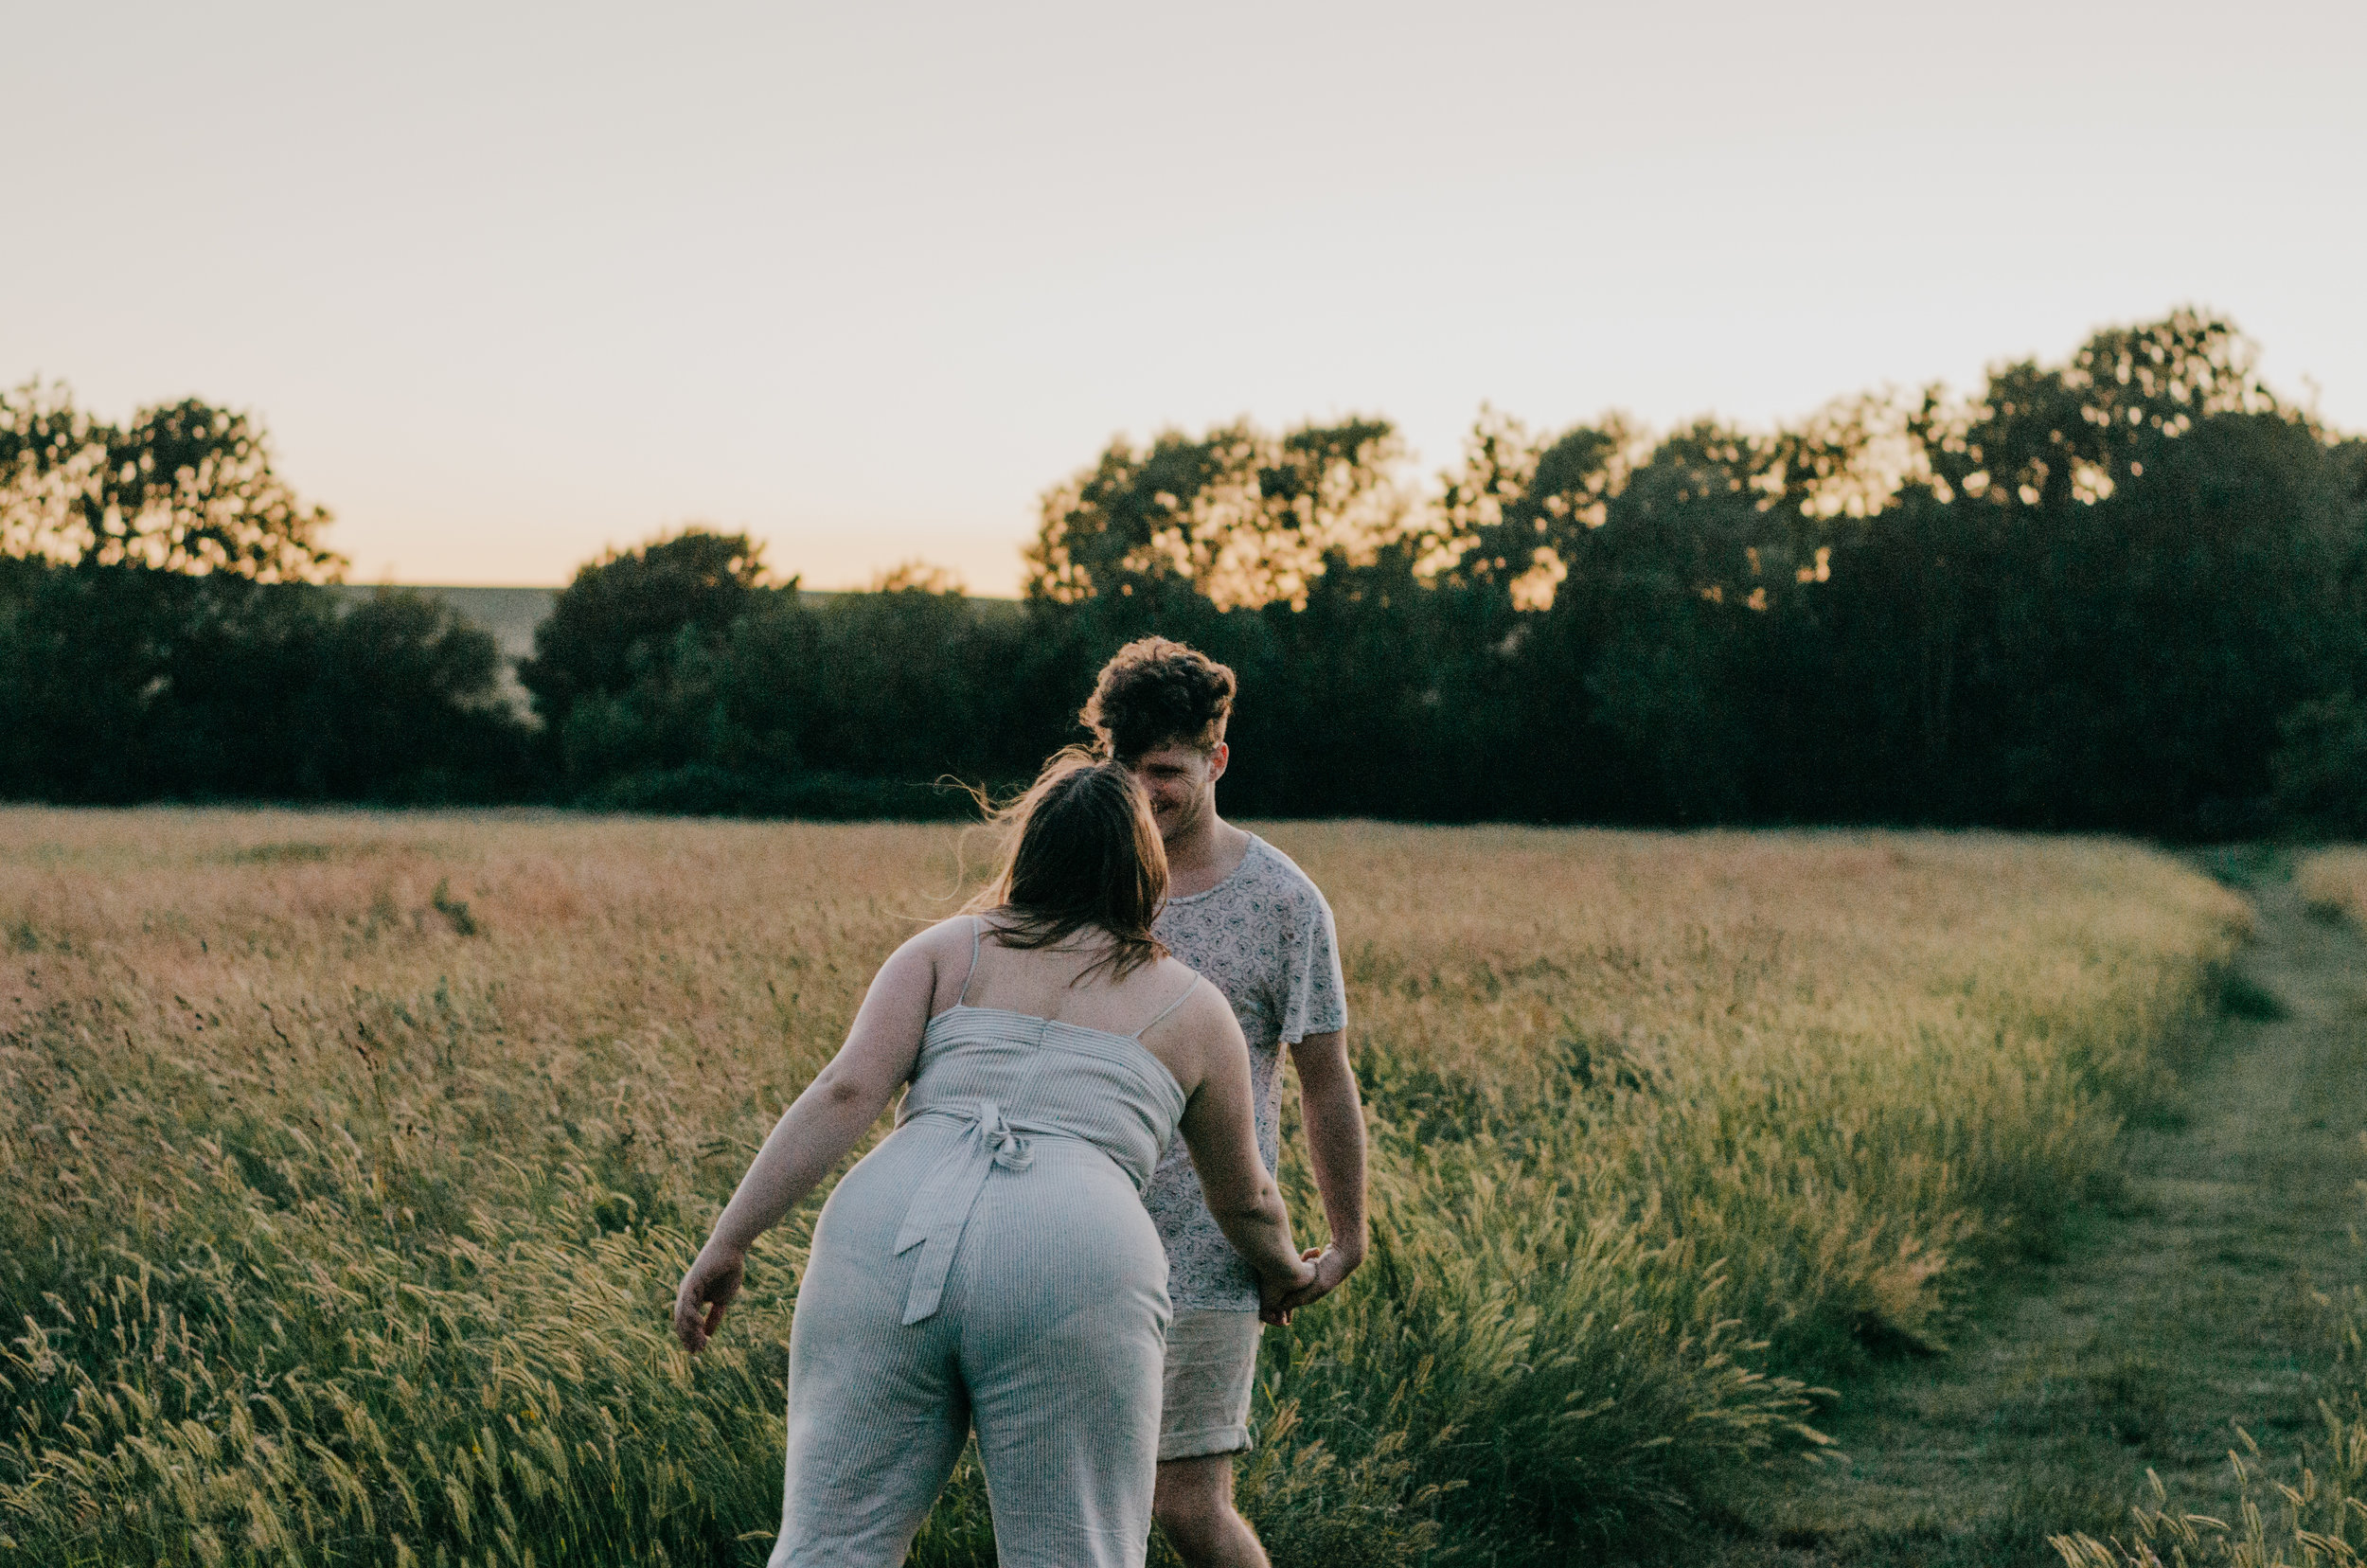 Rebecca & Dougie - Cuckmere Haven - Couple Session - Aiste Saulyte Photography-198.jpg